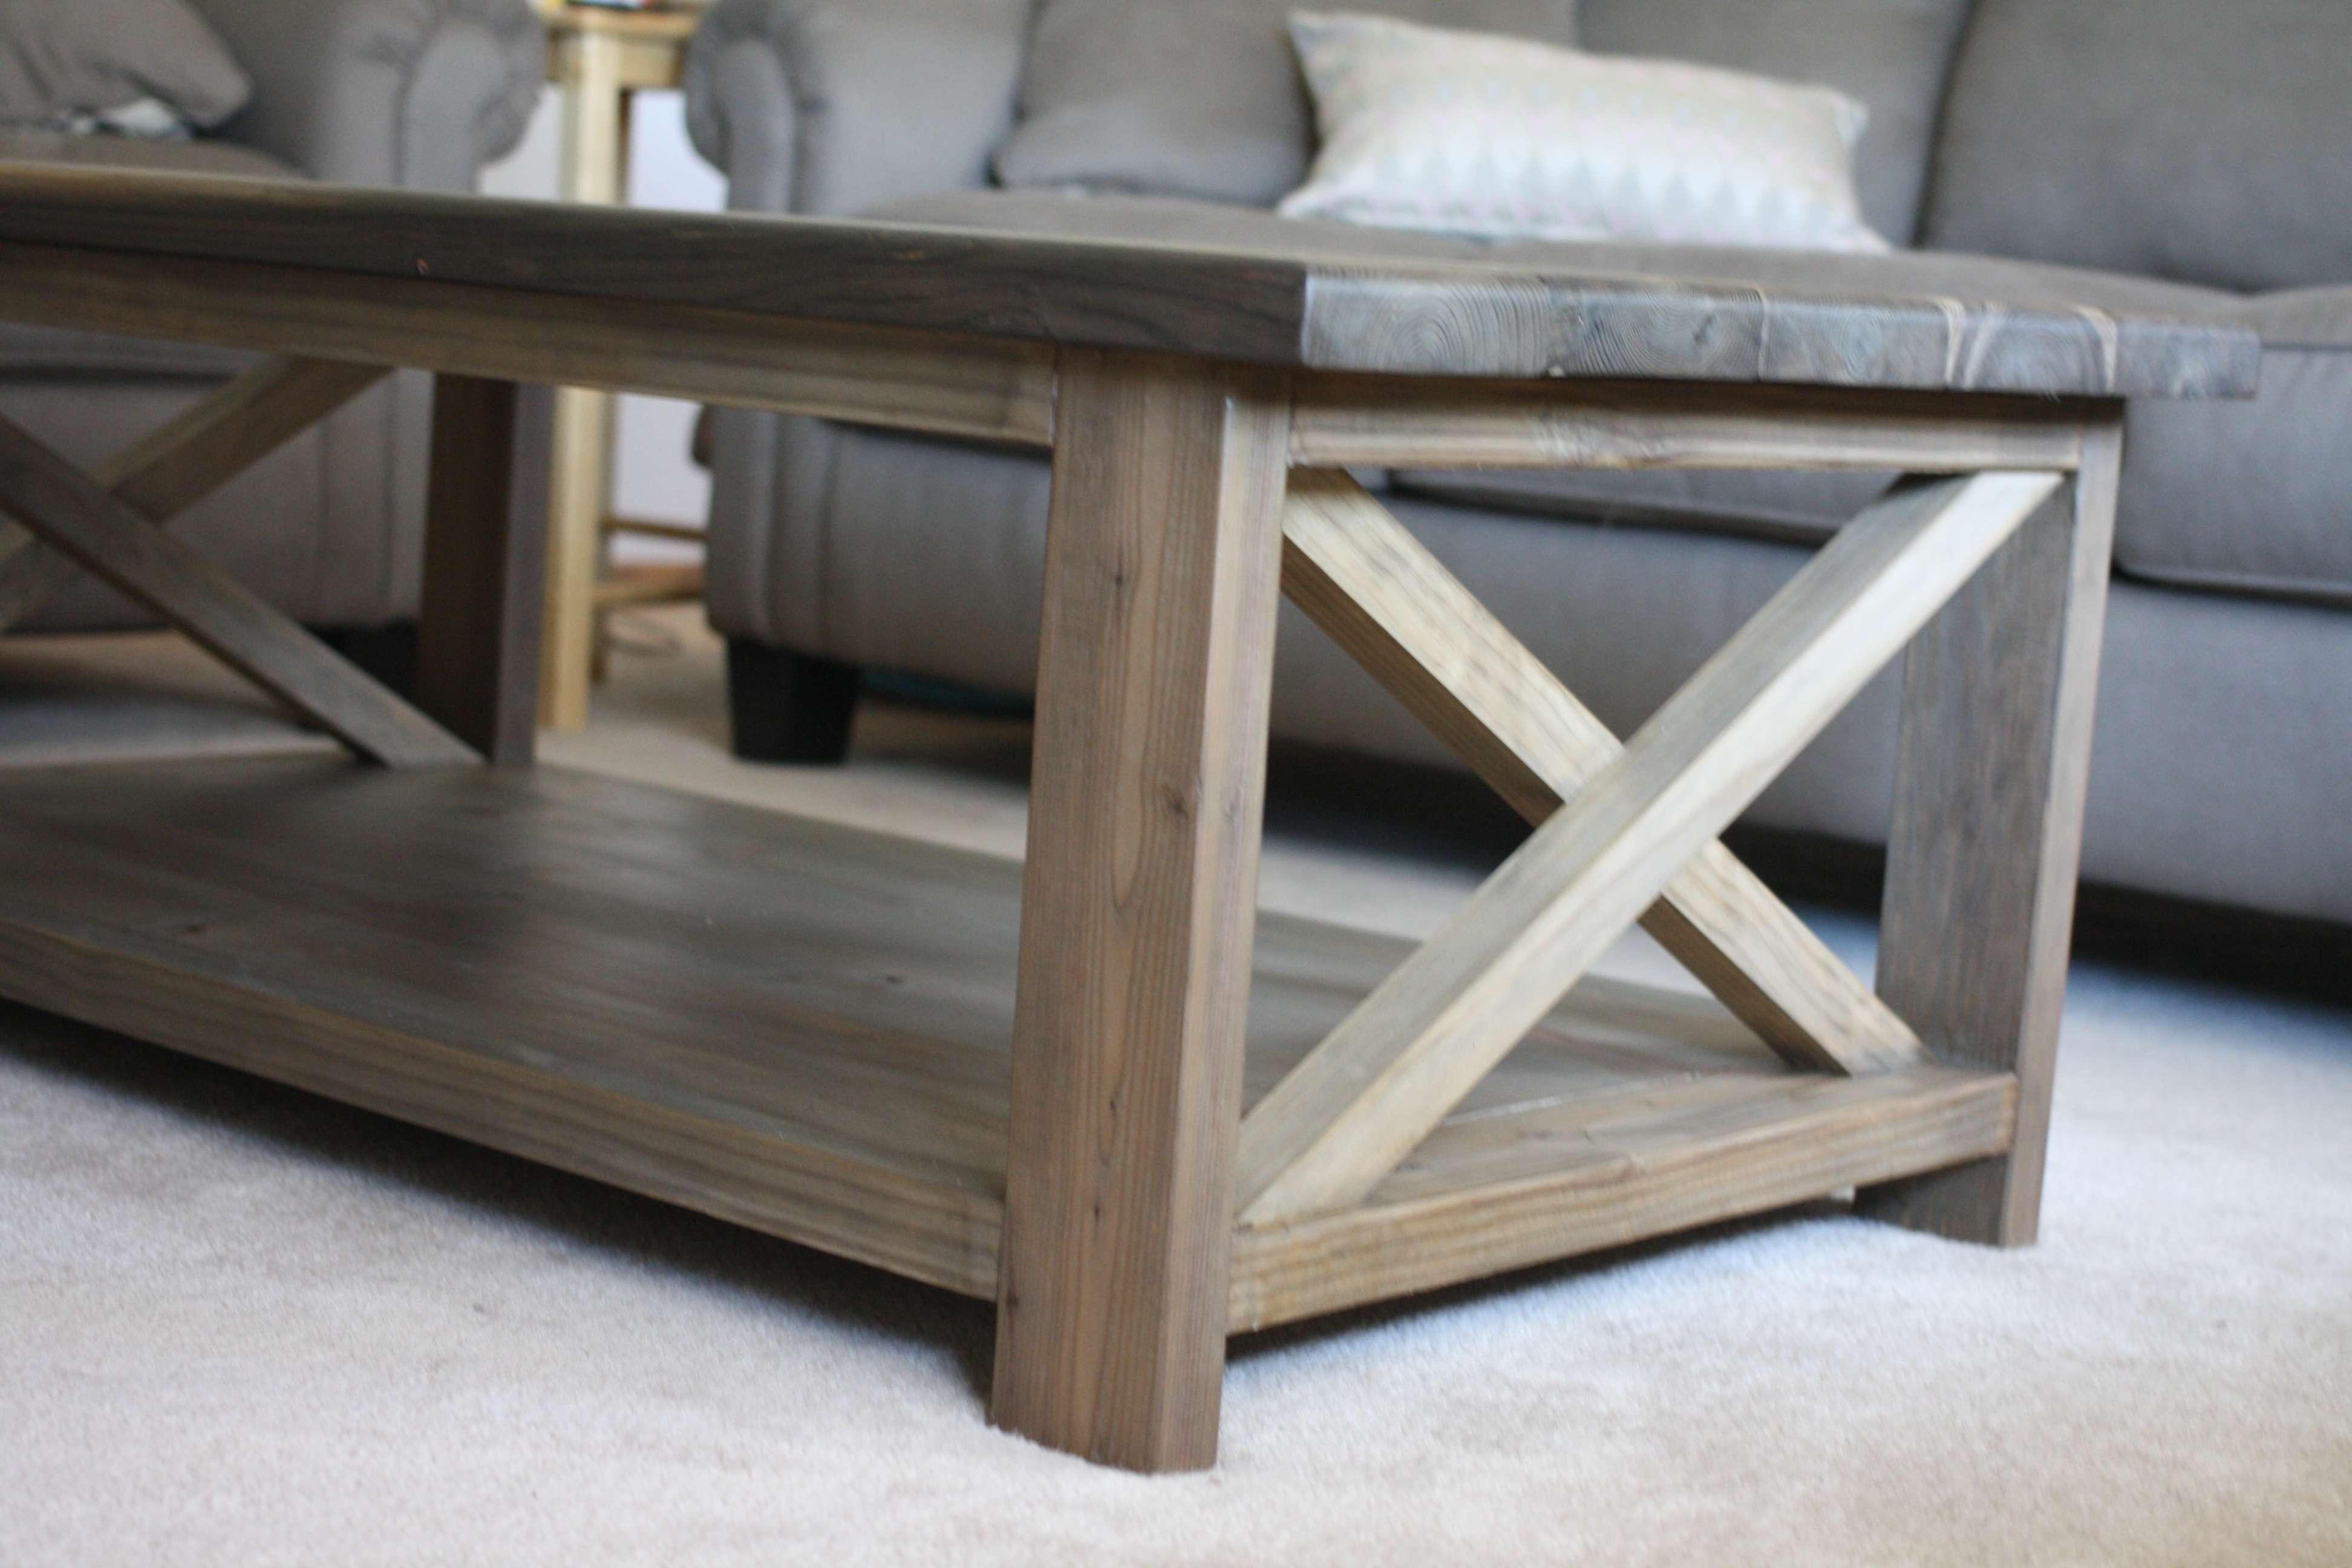 Rustic X Coffee Table – Diy Projects With Regard To Well Known Rustic Wooden Coffee Tables (View 16 of 20)